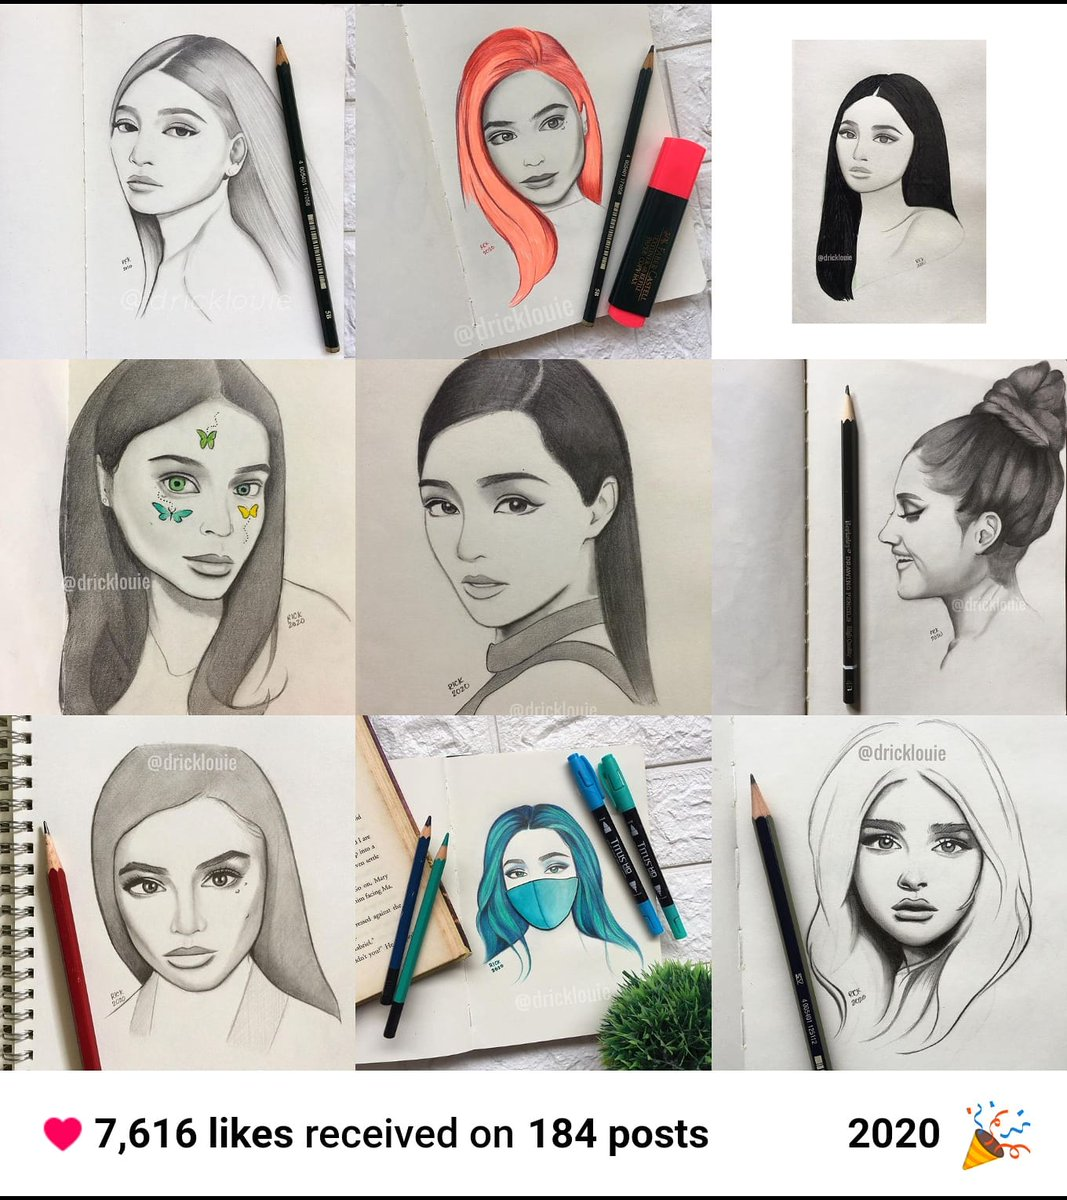 Best Nine 2020 on my IG! ☺️ #nadinelustre #annecurtis